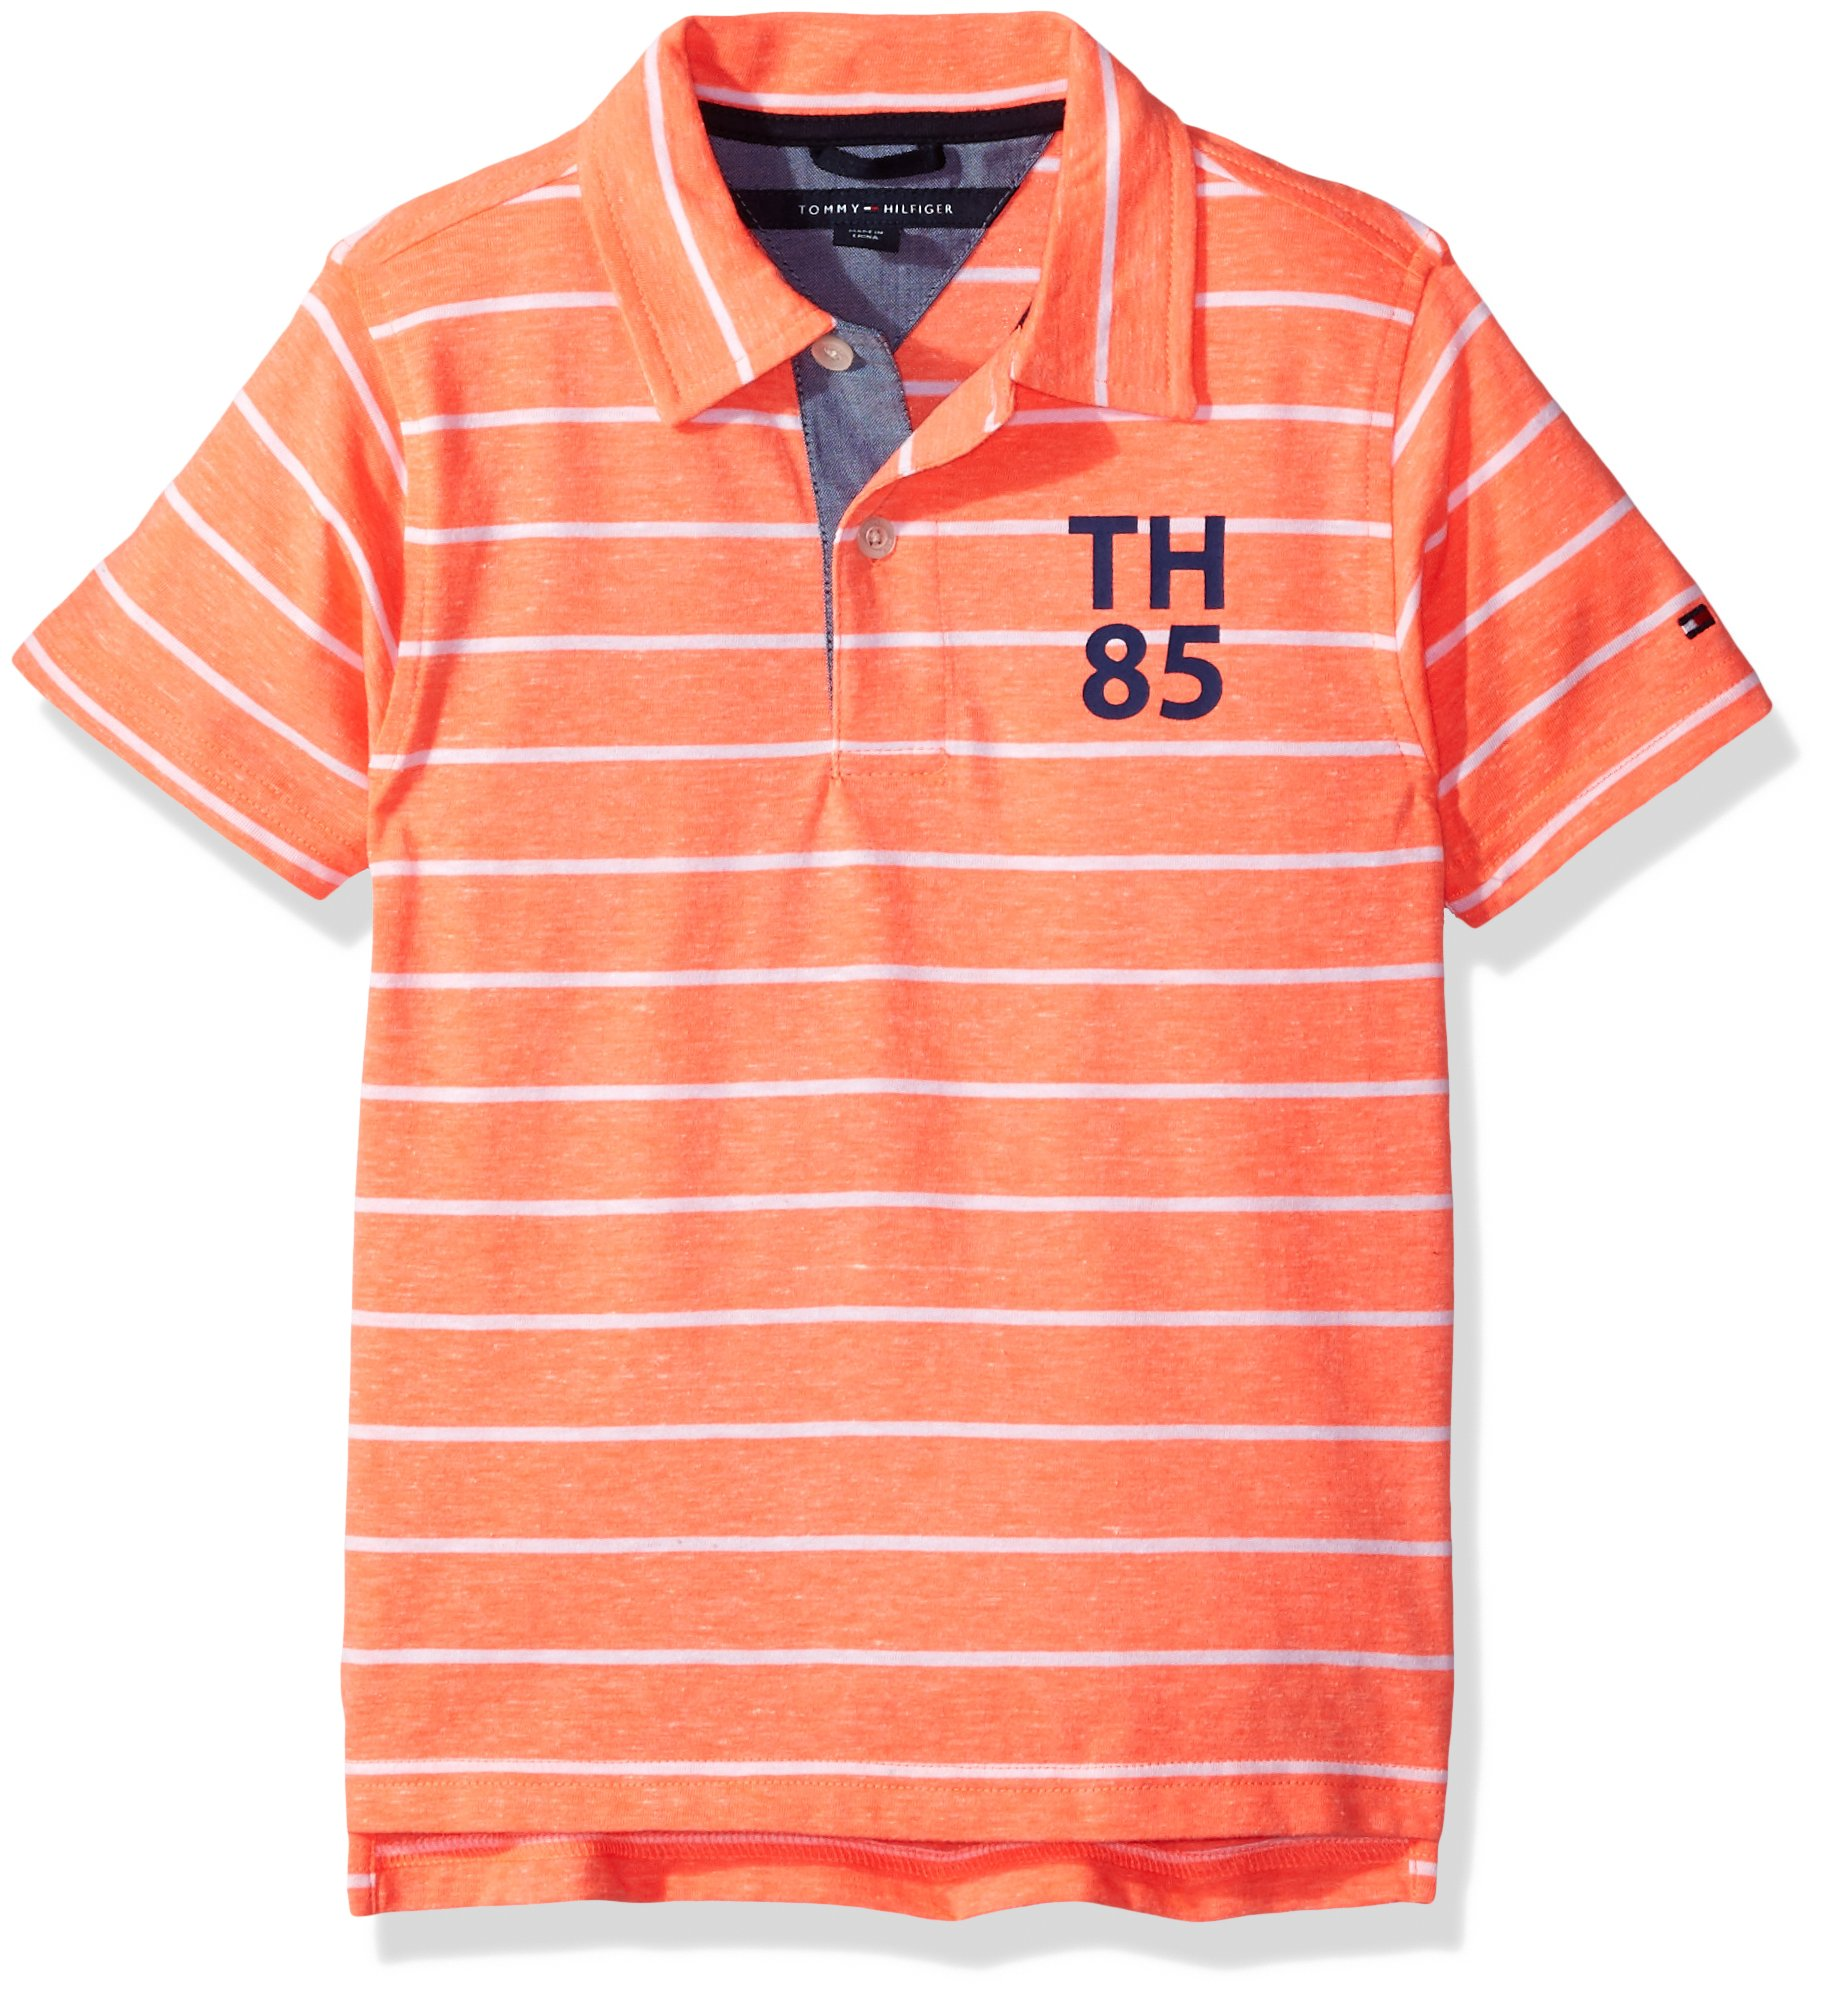 Tommy Hilfiger Boys' Little Short Sleeve Striped Polo Shirt, Fiery Coral, 4